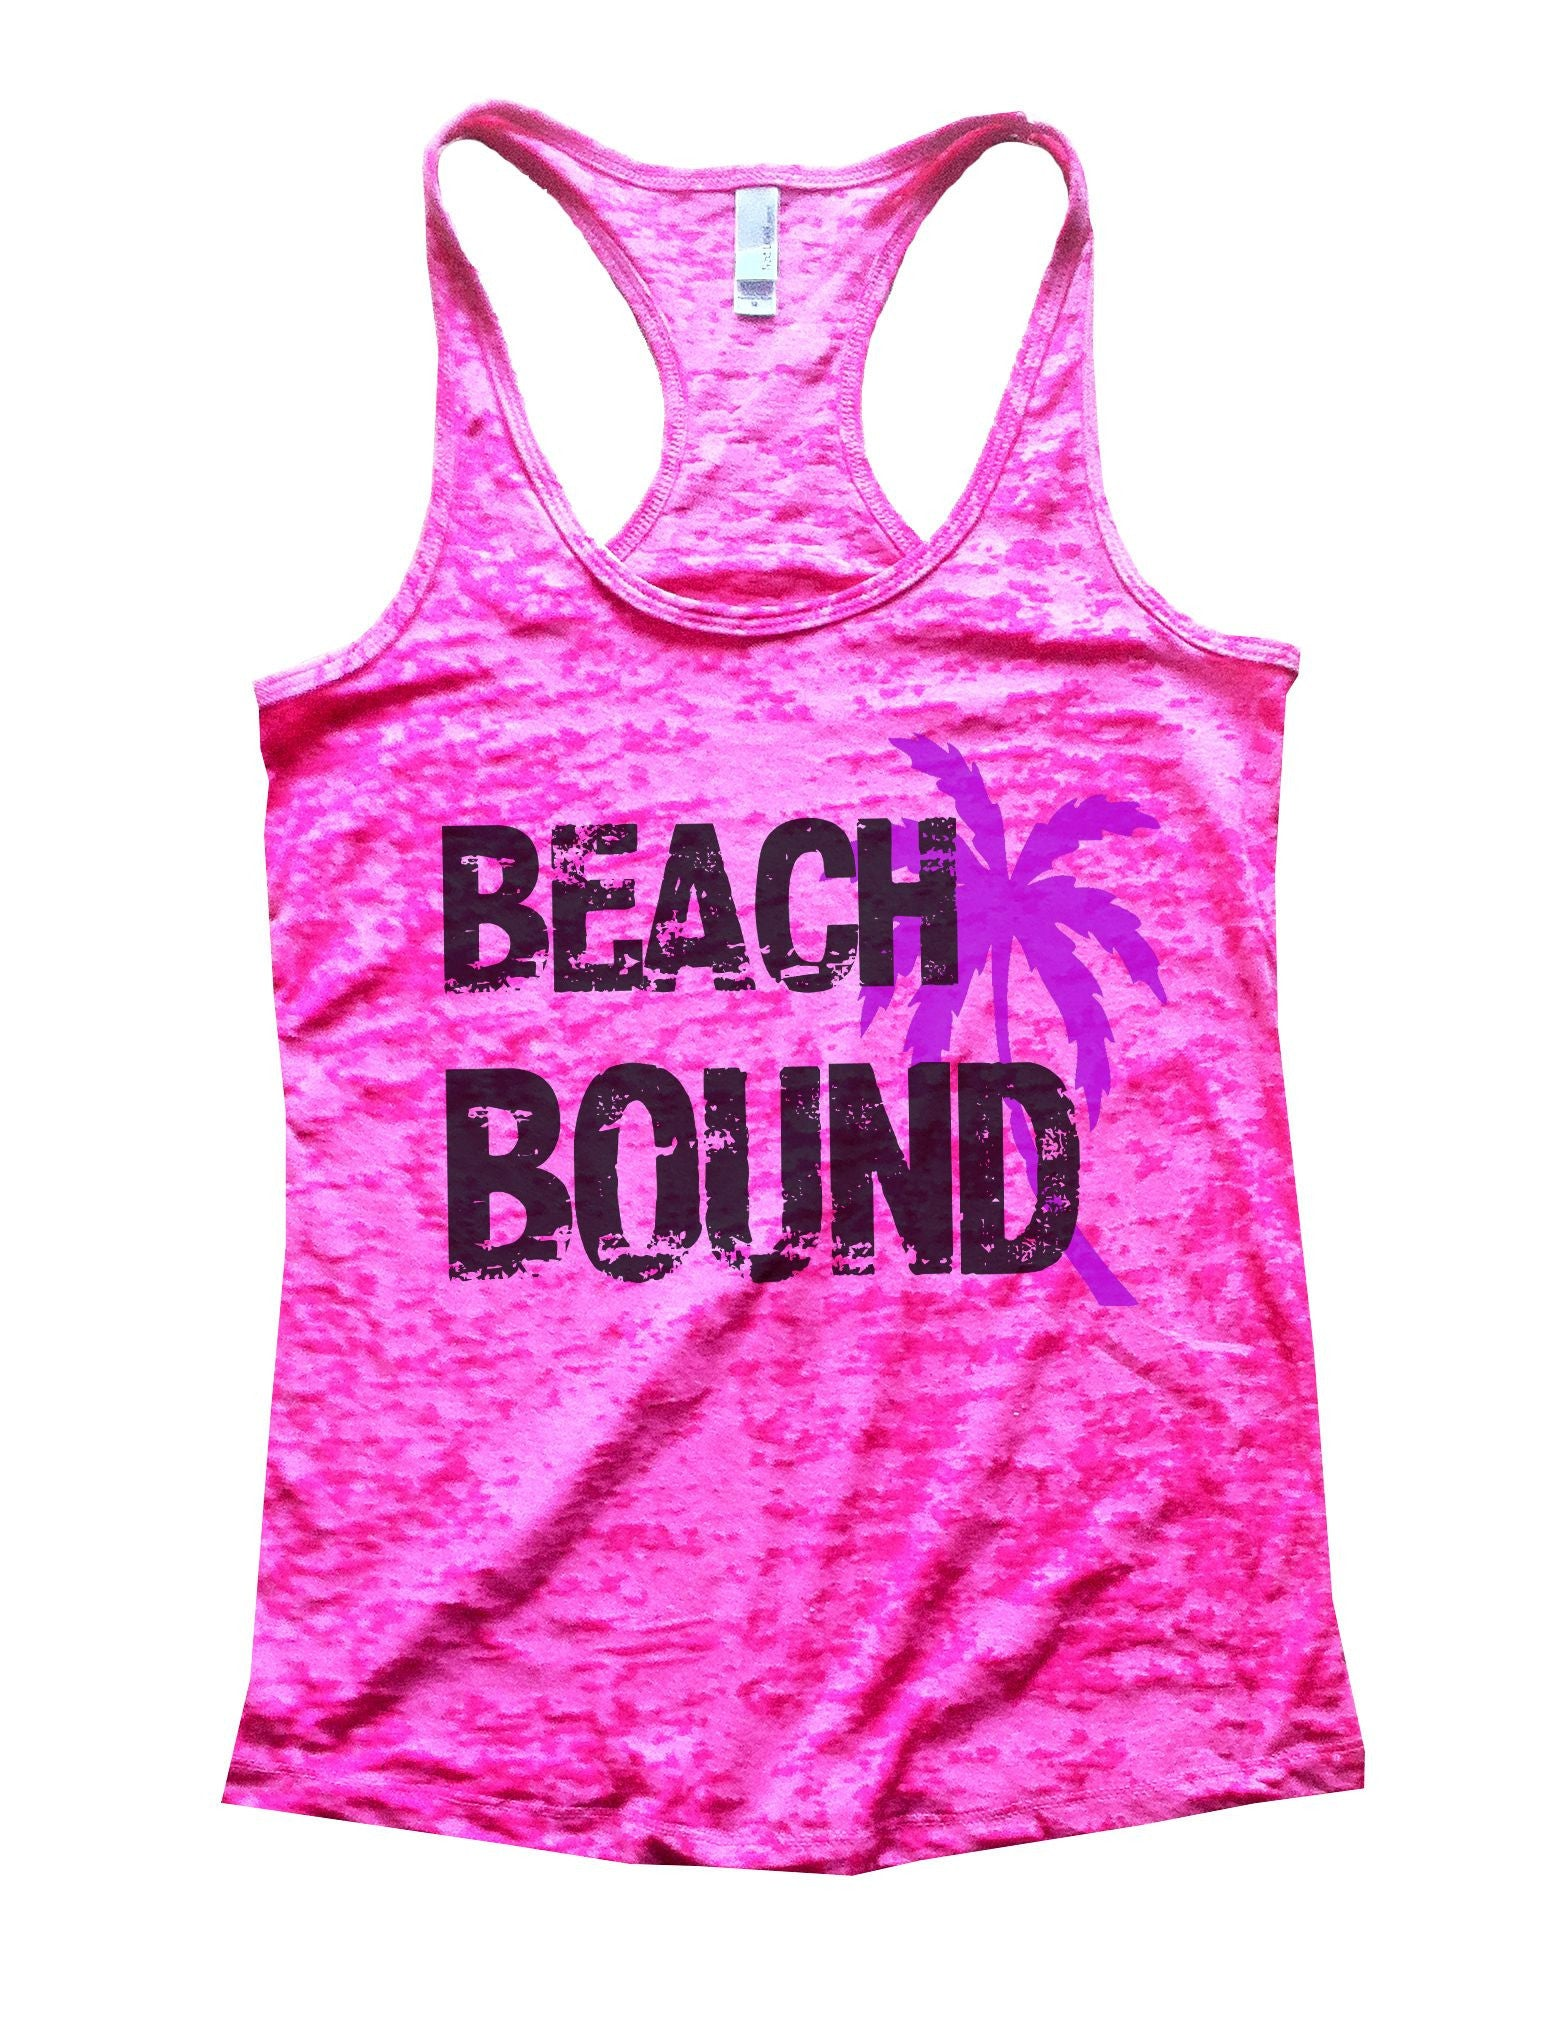 Beach Bound Burnout Tank Top By BurnoutTankTops.com - 748 - Funny Shirts Tank Tops Burnouts and Triblends  - 3